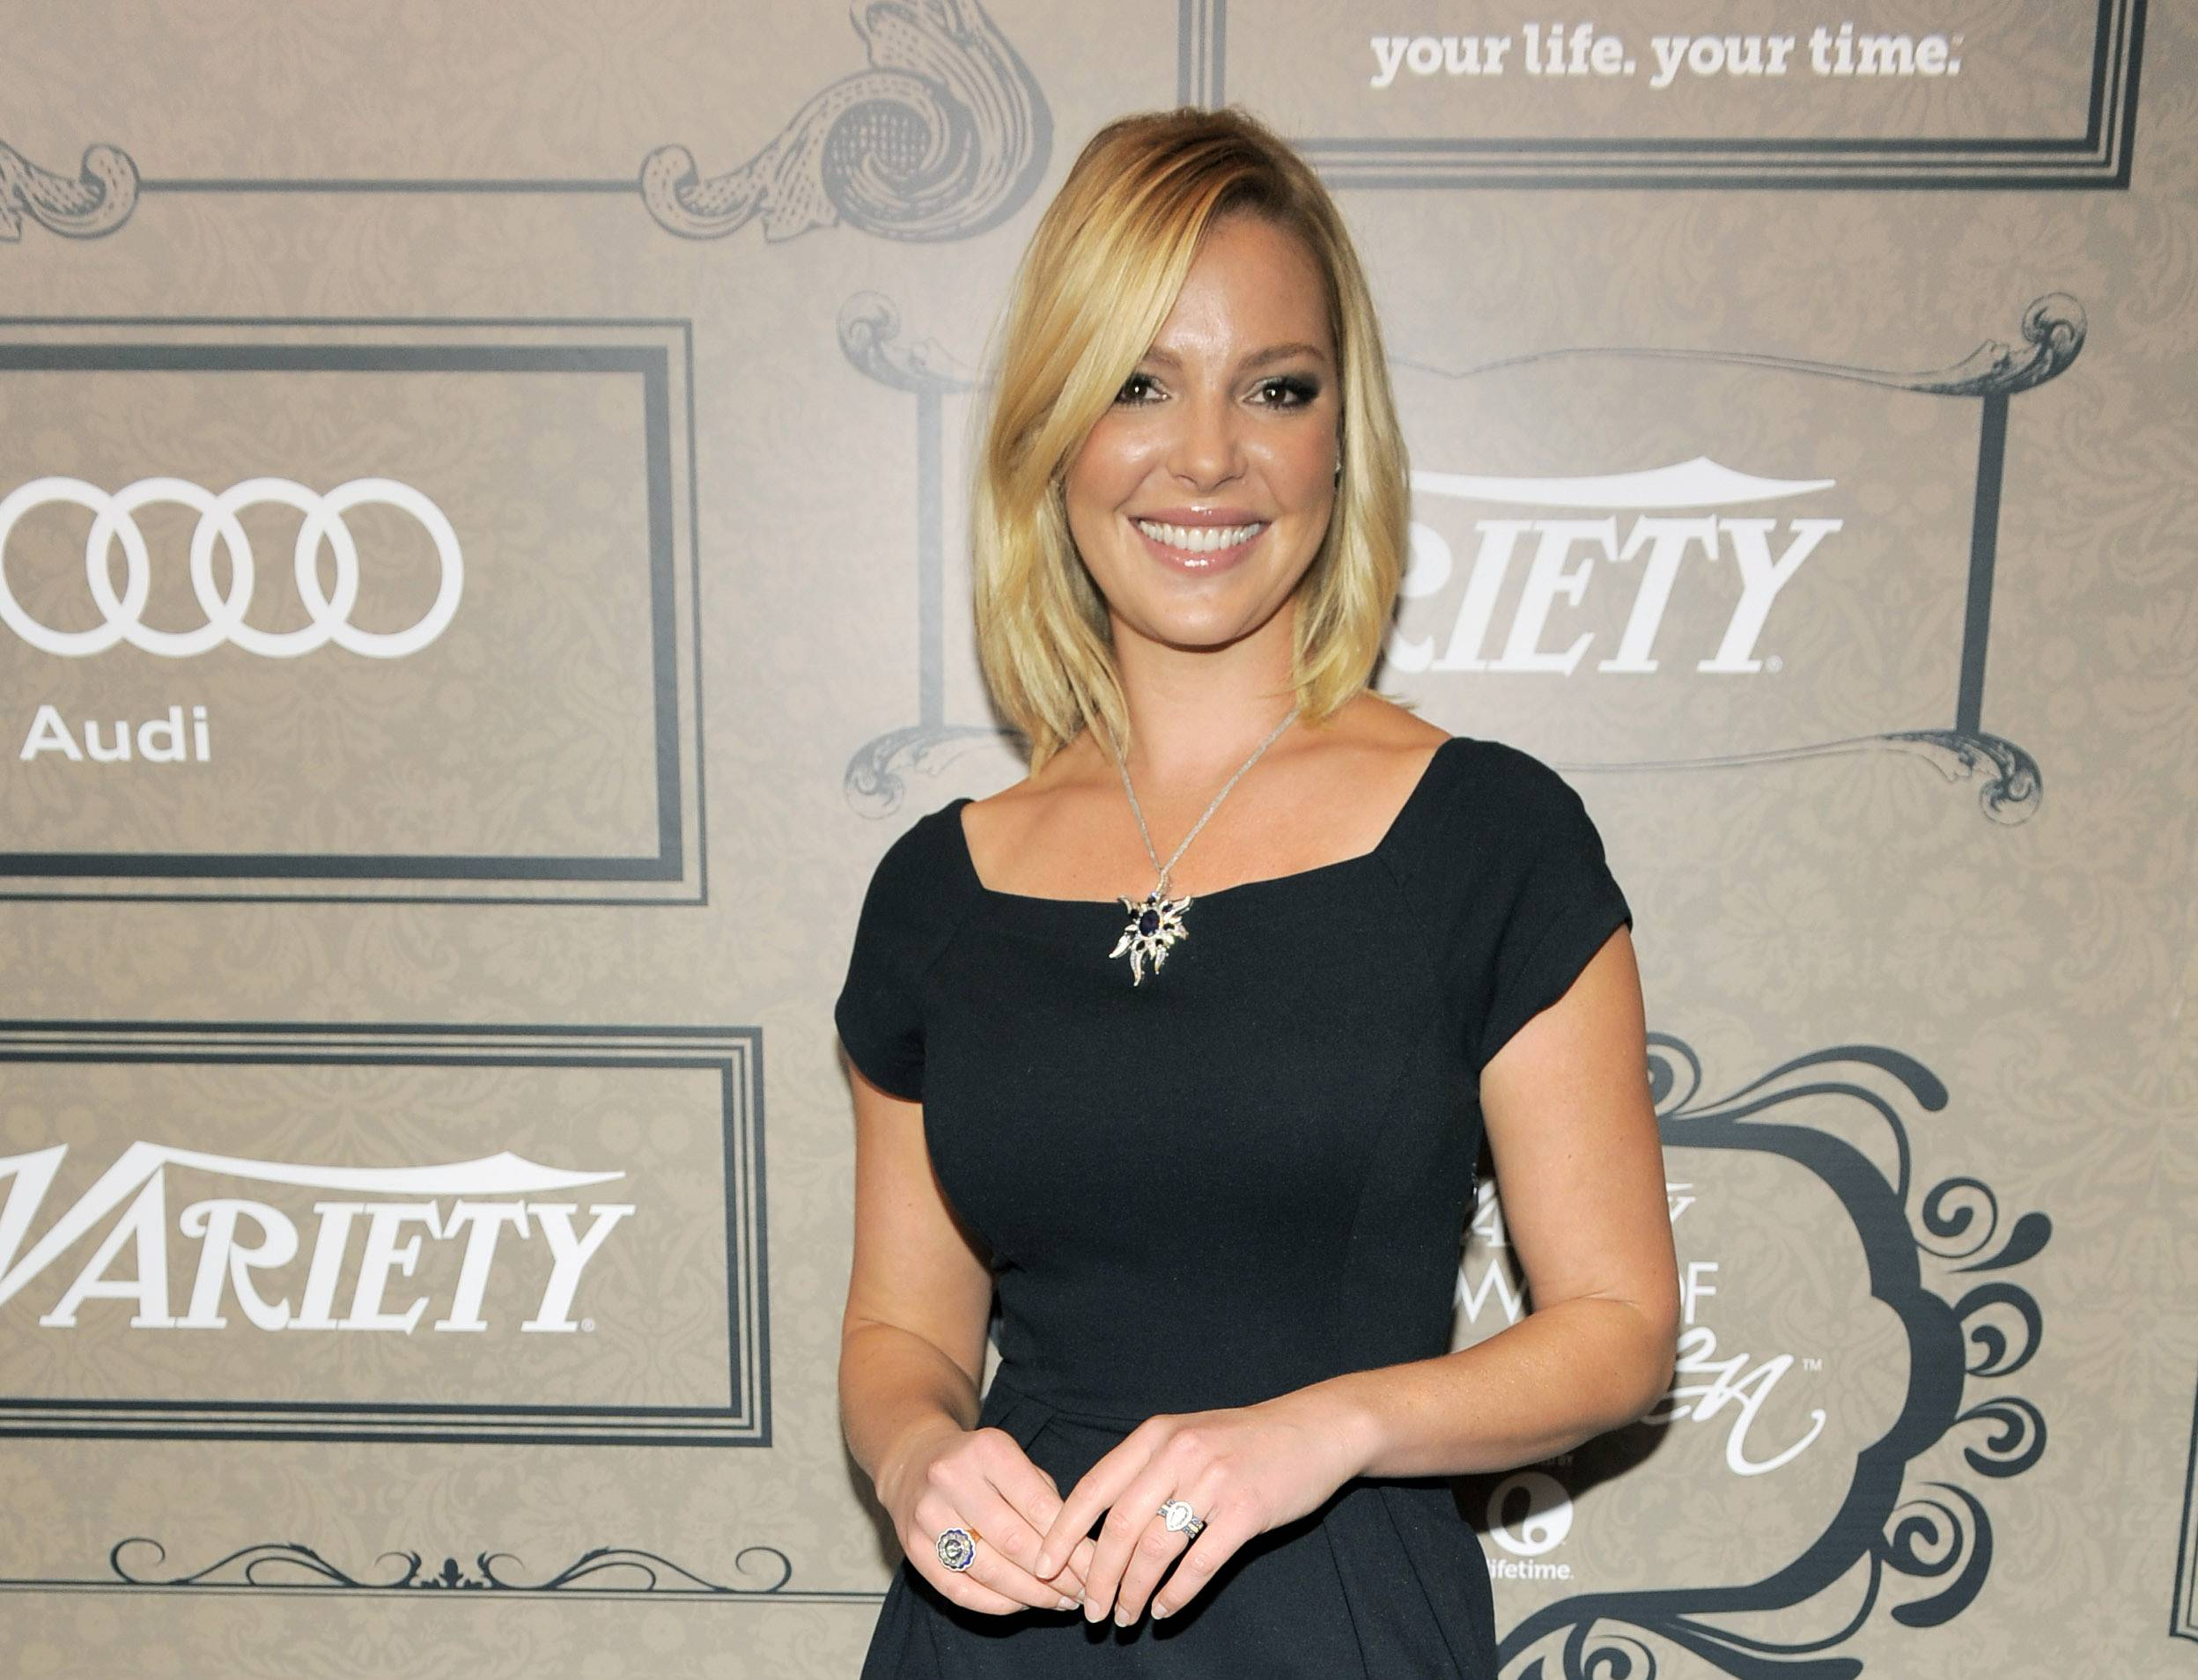 Actress Katherine Heigl has sued Duane Reade Inc., saying the company is using a picture of her leaving one of its pharmacies in its promotional materials.